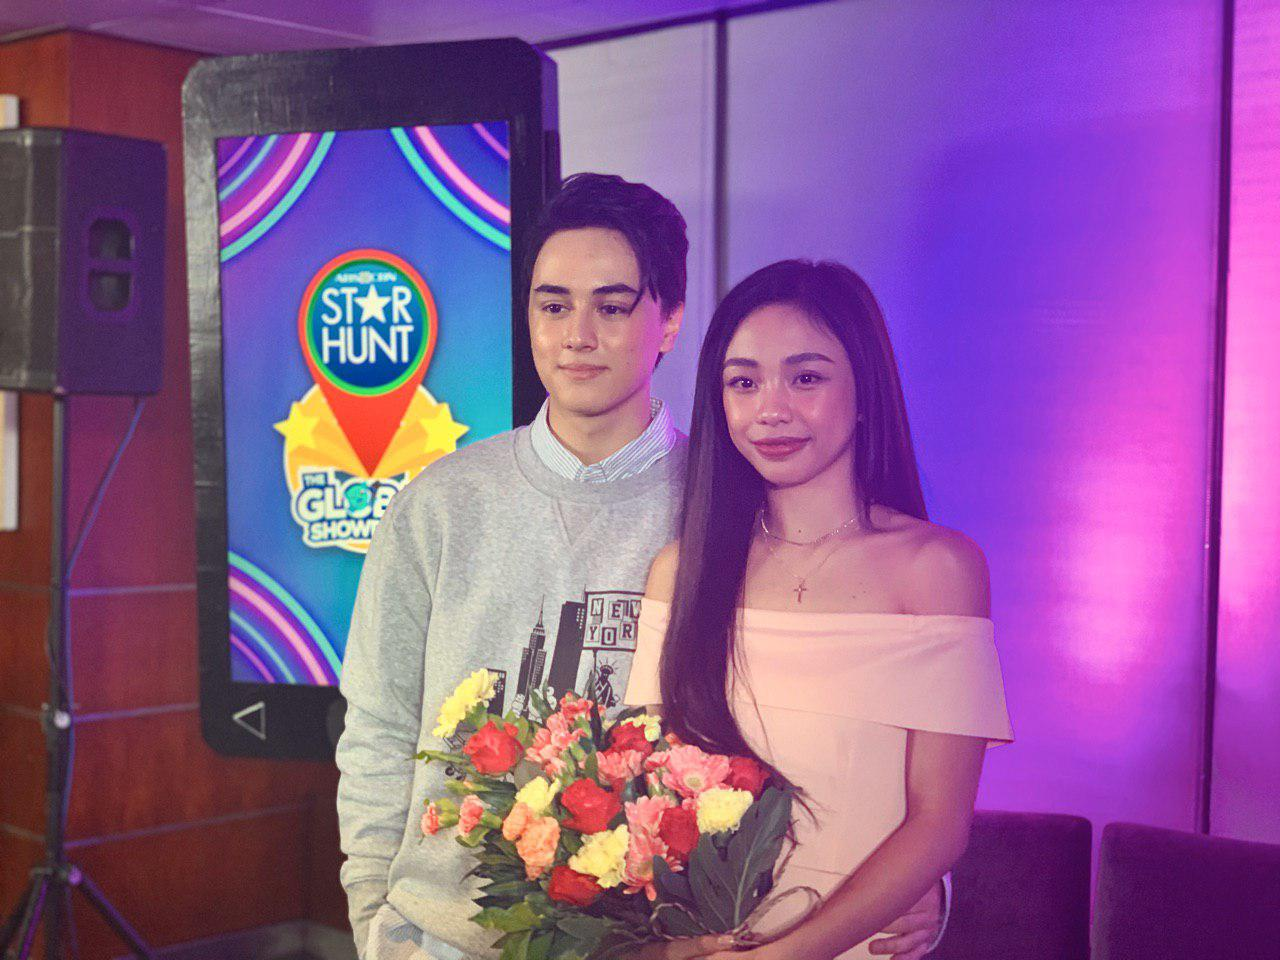 Edward Barber and Maymay Entrata